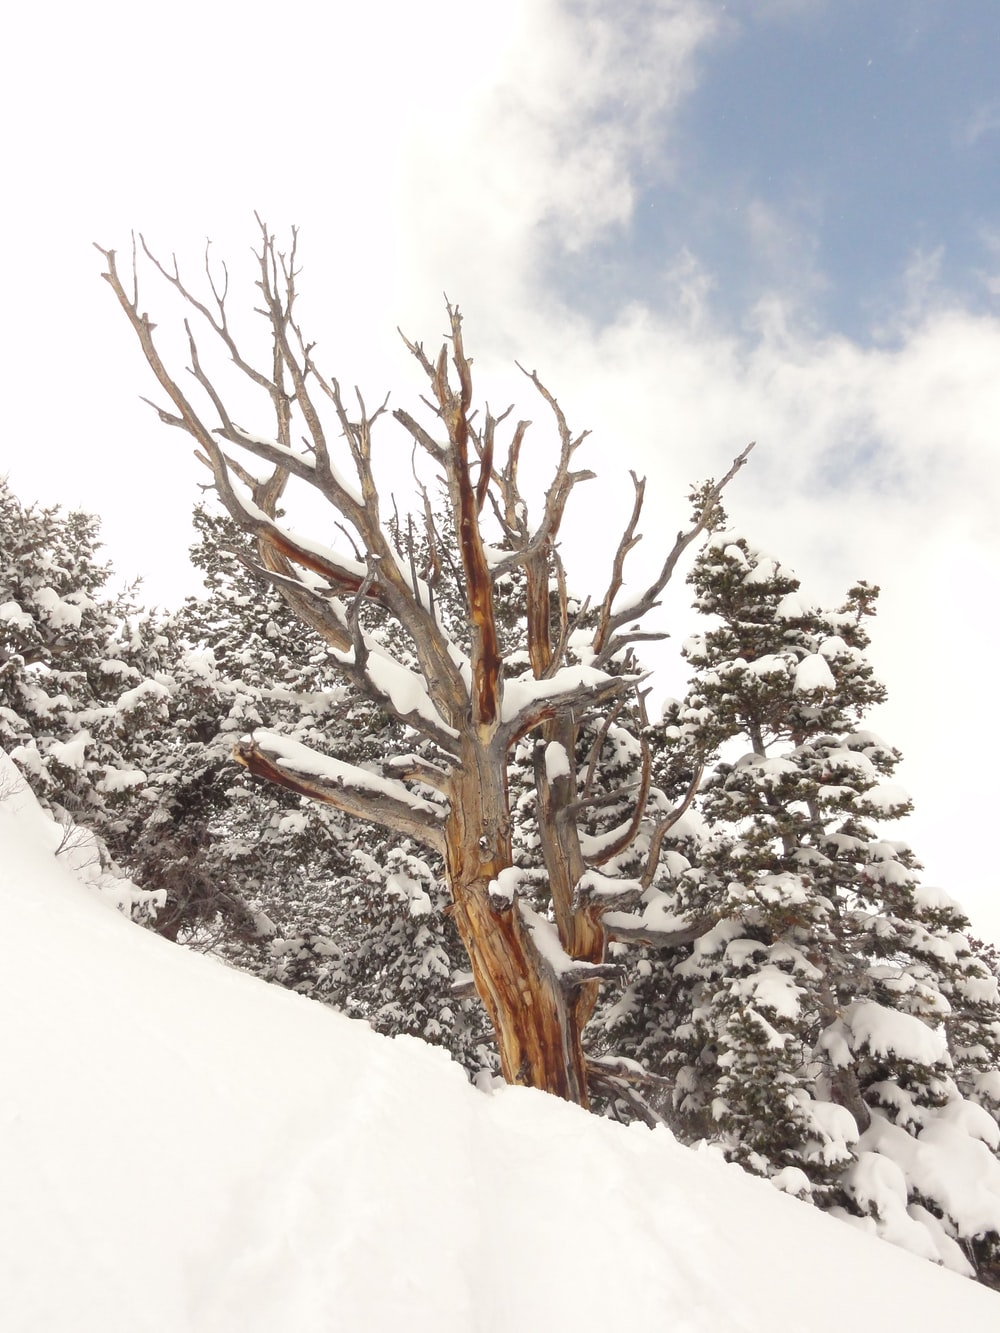 brown bare tree on snow covered ground under white cloudy sky during daytime